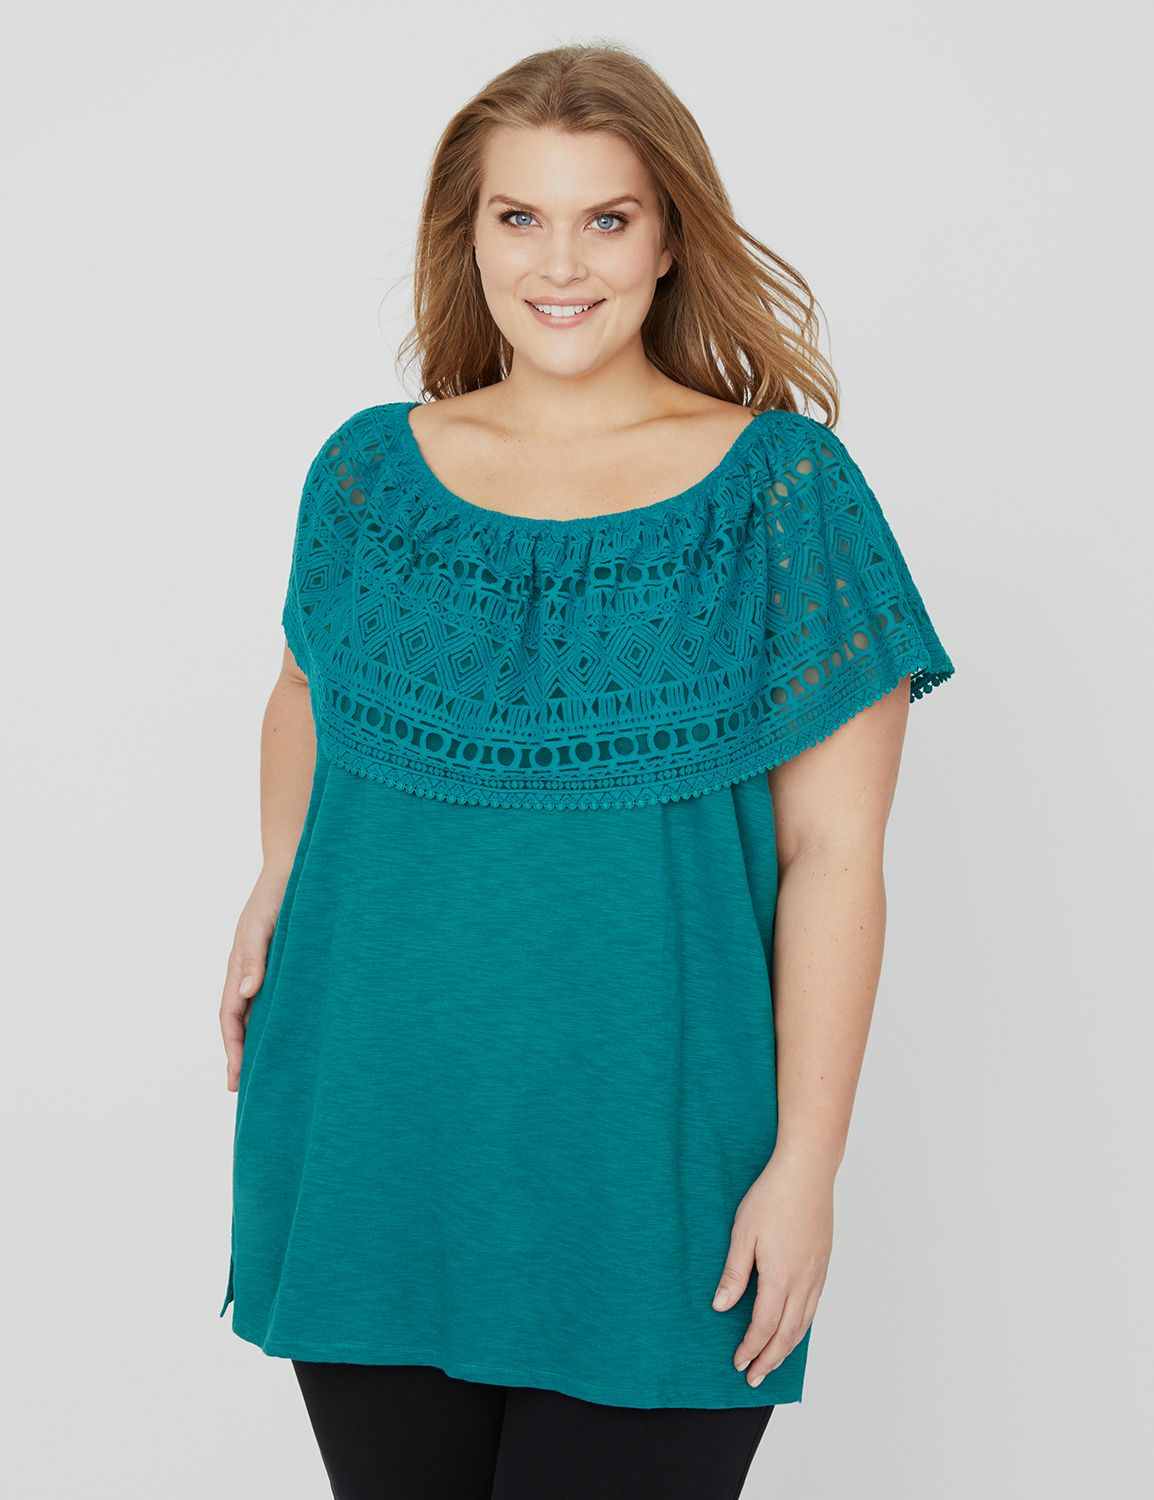 Shaded Cove Off-the-Shoulder Top 1088202 BURNOUT FLOUNCE OFF SHOULDE MP-300101842